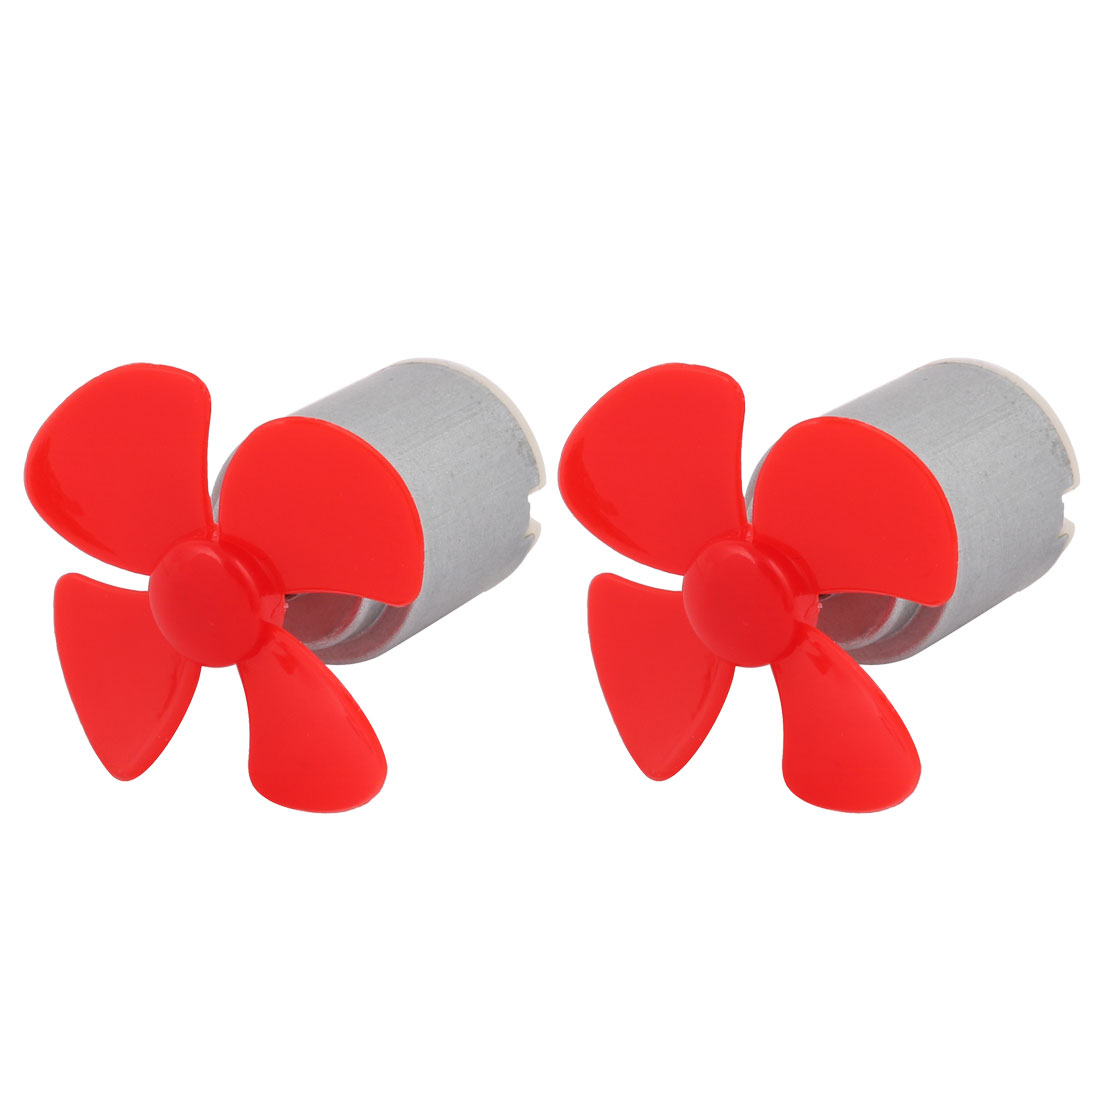 2pcs DC 3V 0.13A 6600RPM Red Strong Force Motor 4 Vanes 40mm Propeller for RC Aircraft